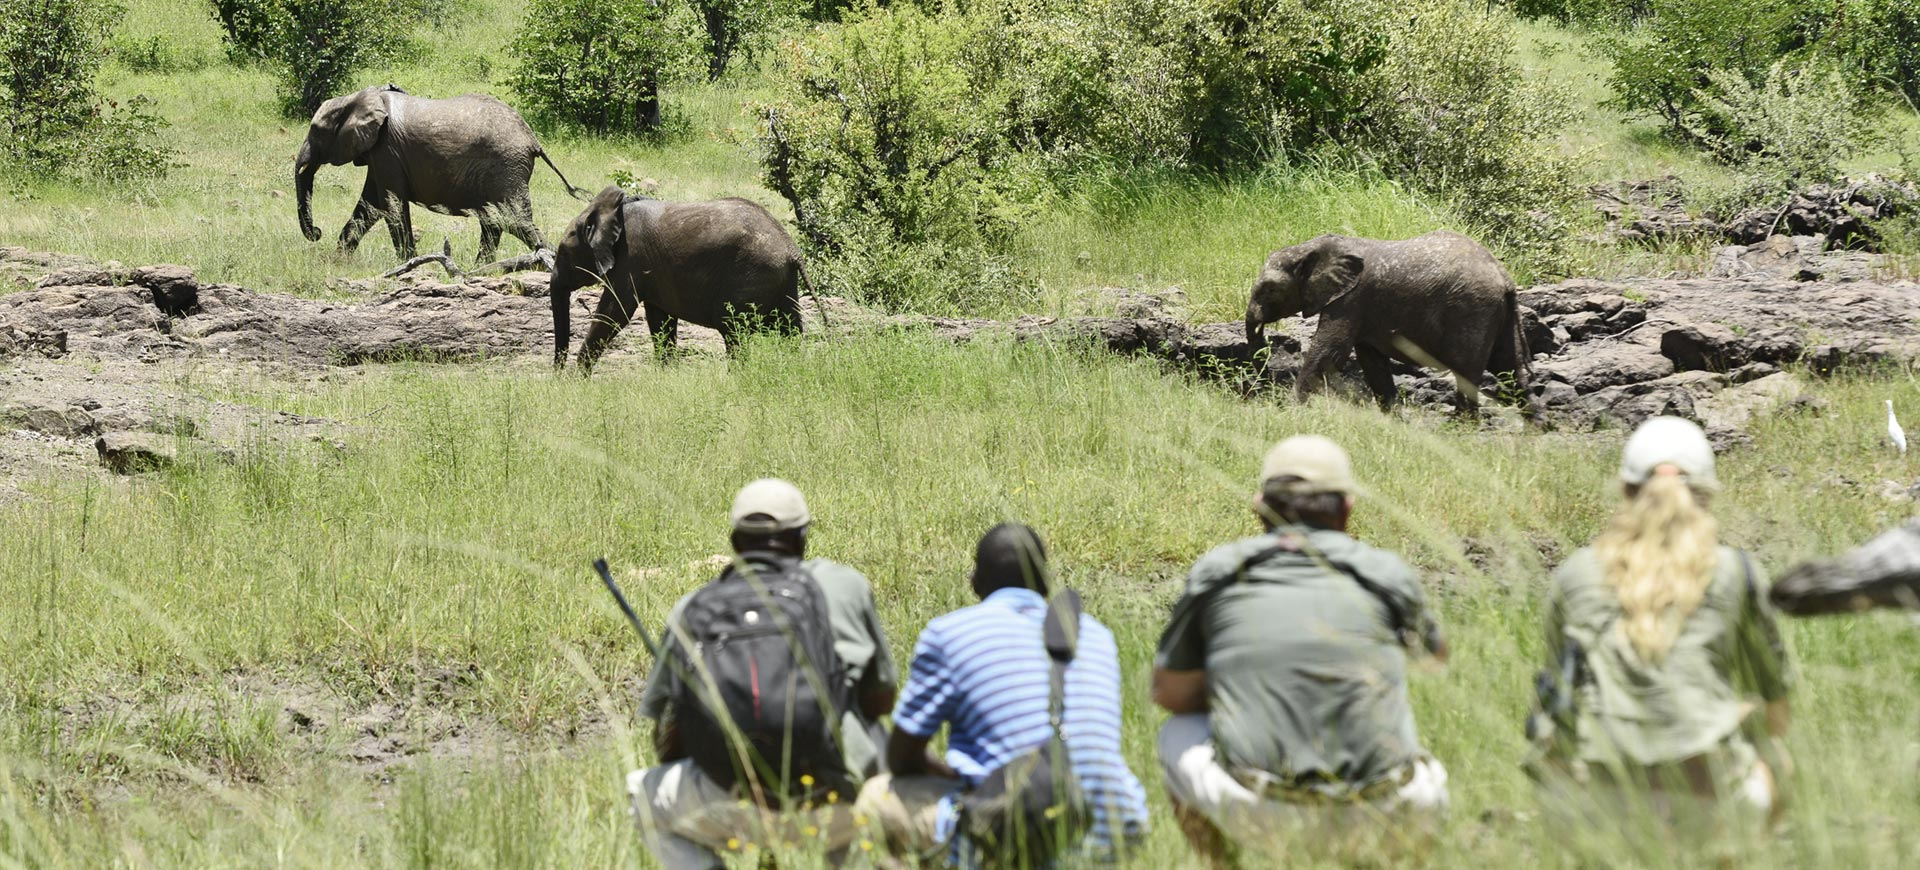 Zambezi National Park Wildlife Conservation Safari